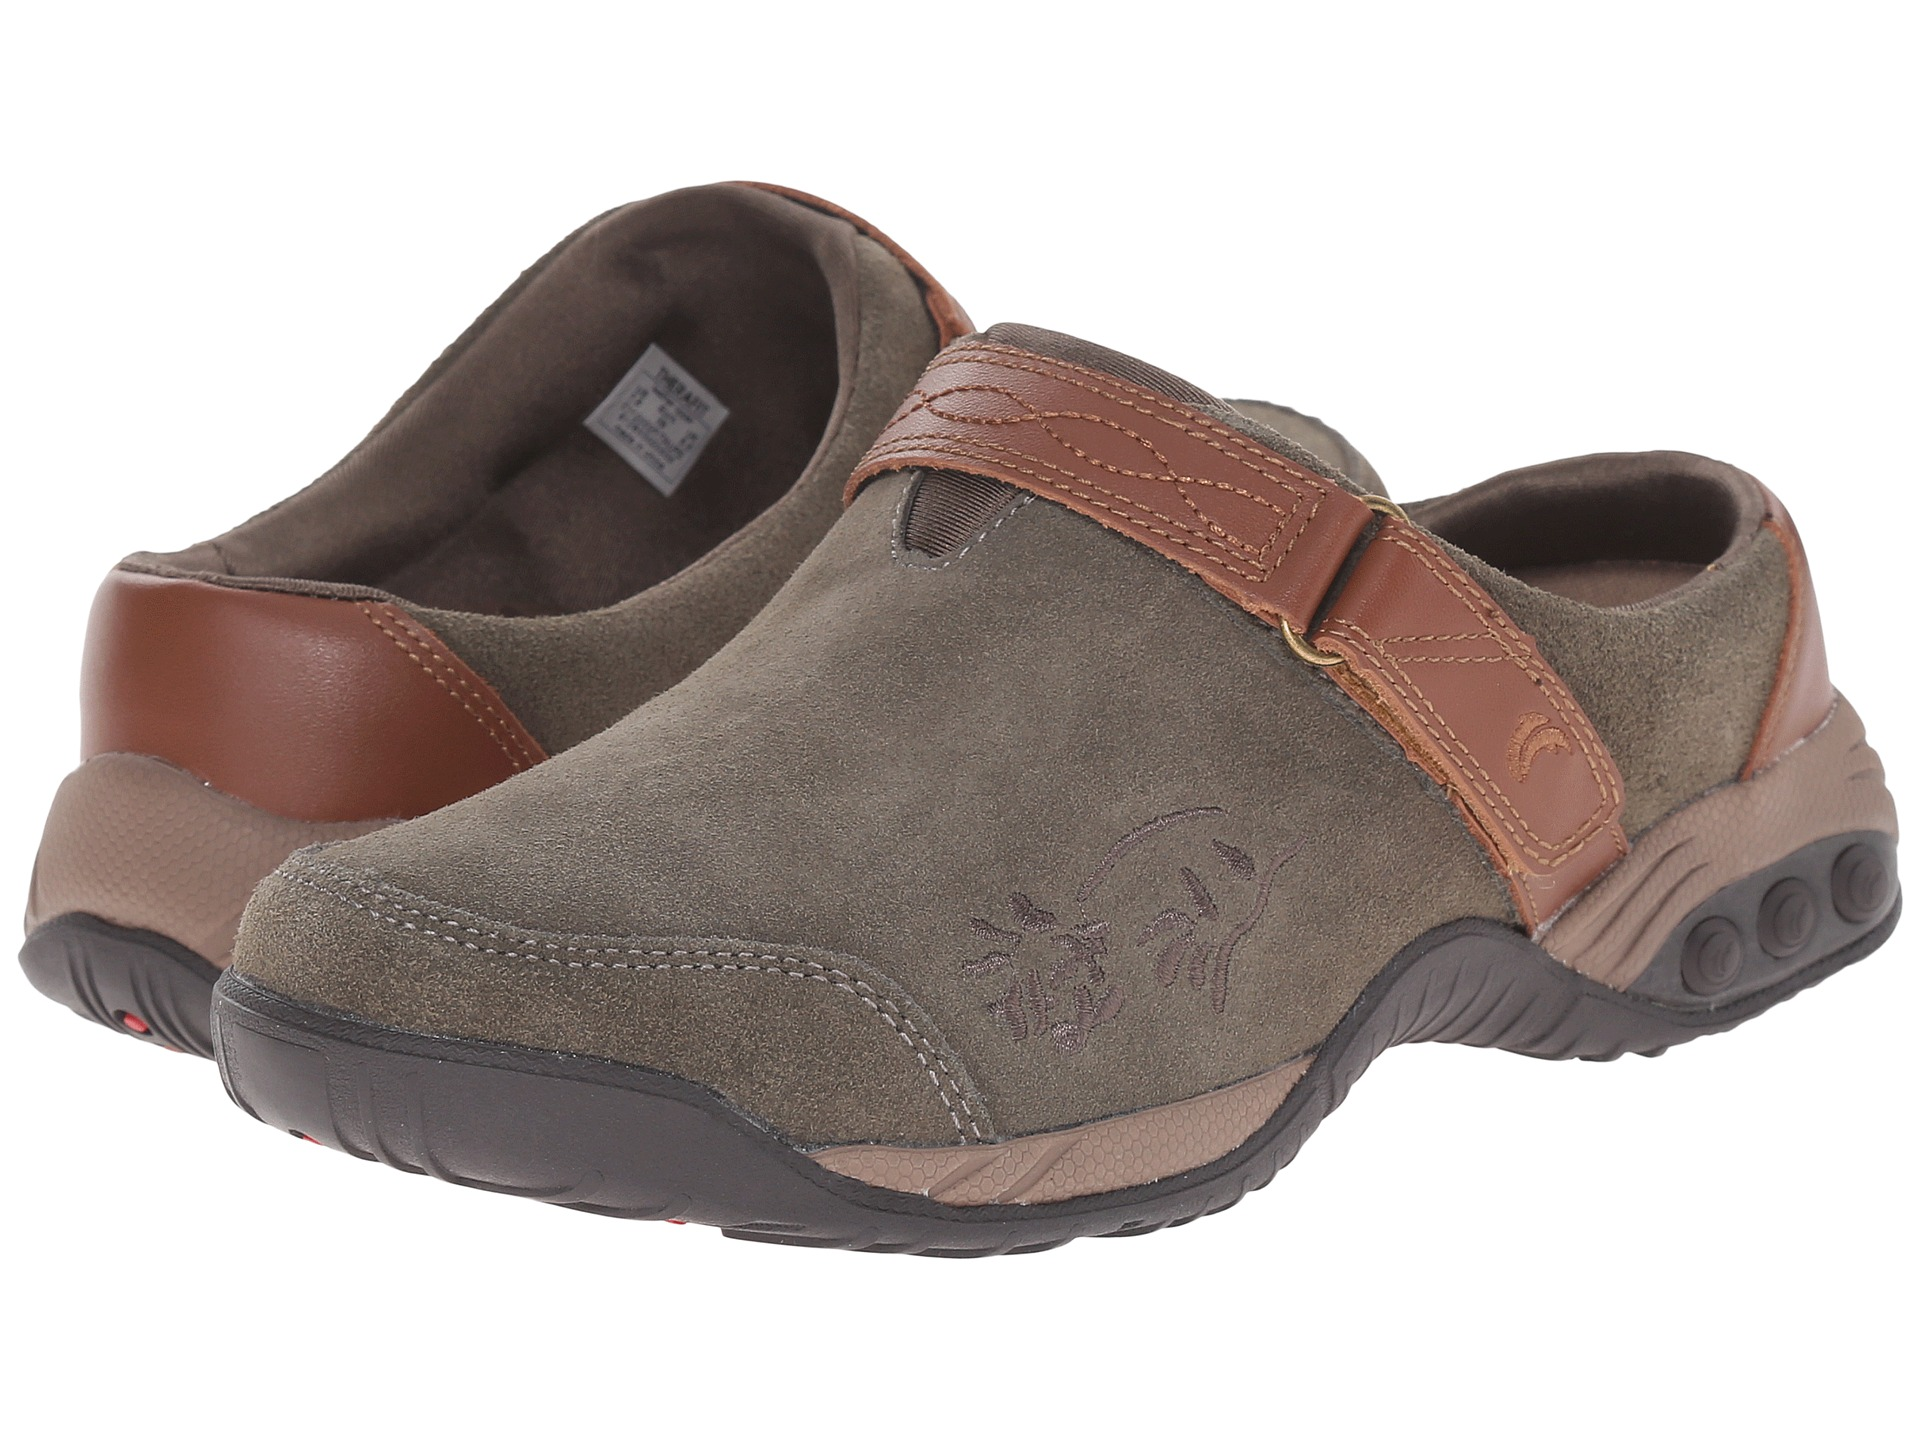 Therafit Shoes On Sale